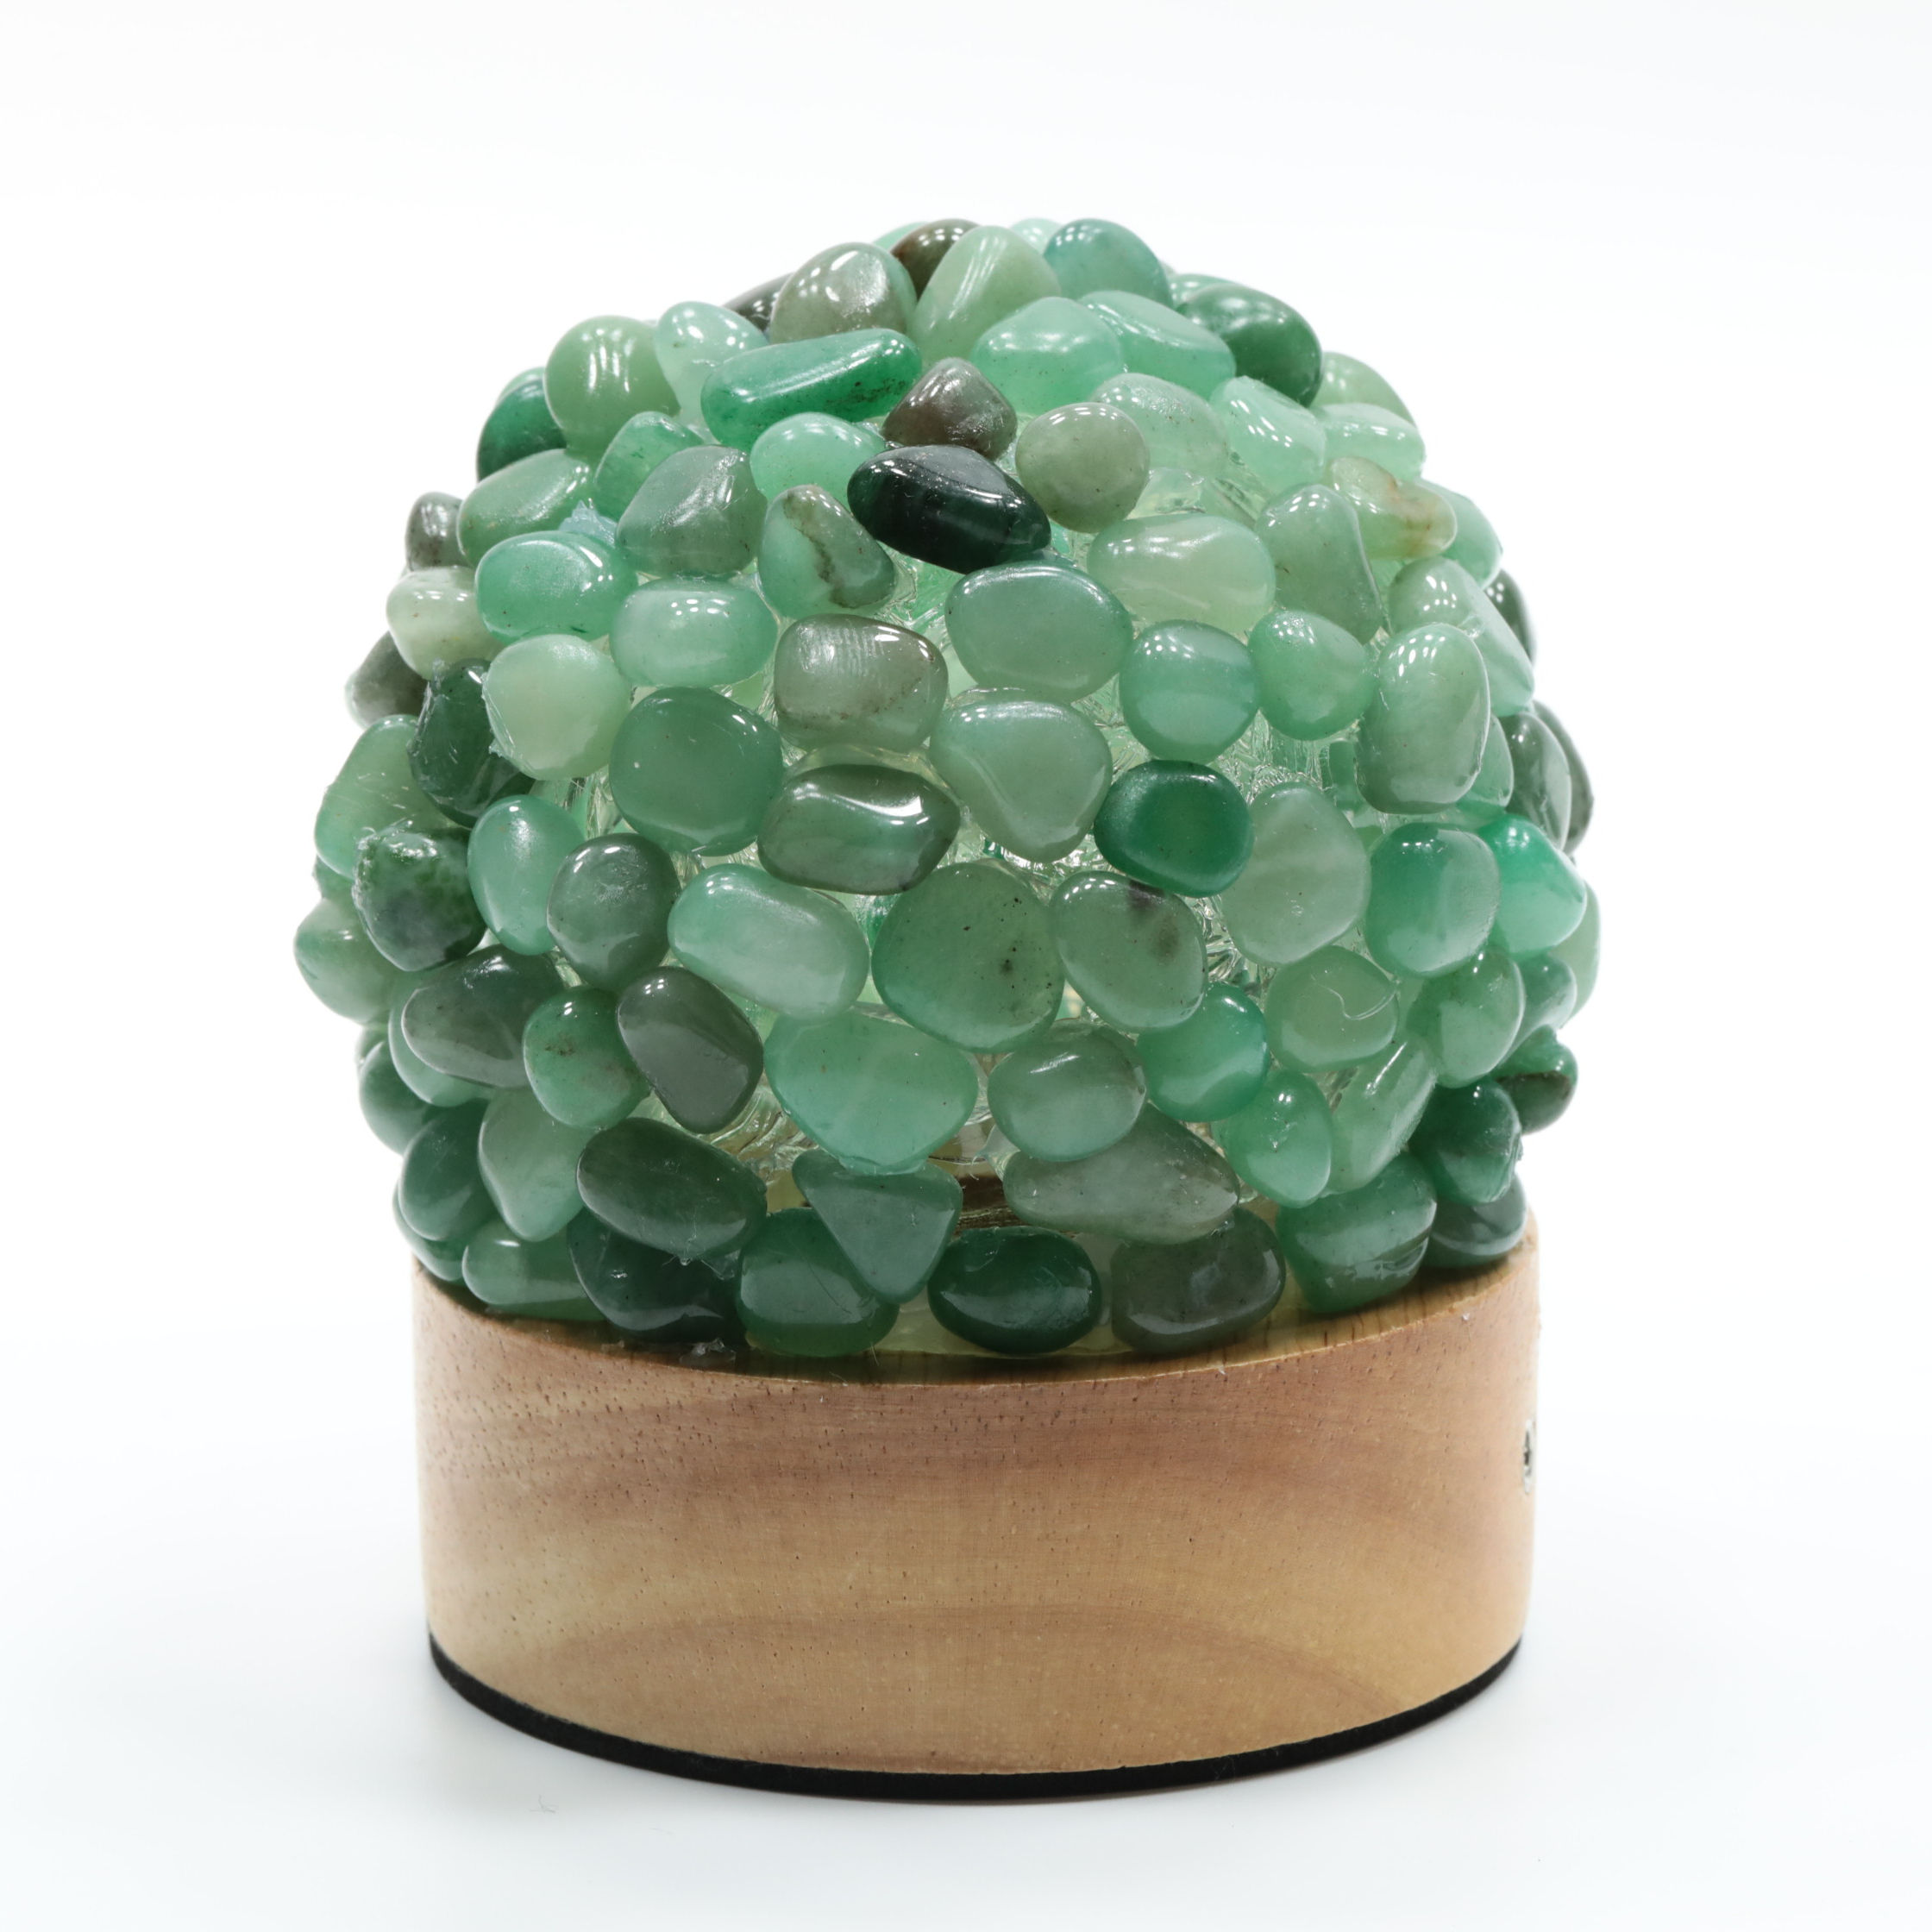 Living room furniture crystal table lamp green fluorite gravel crystal lighting for home decoration